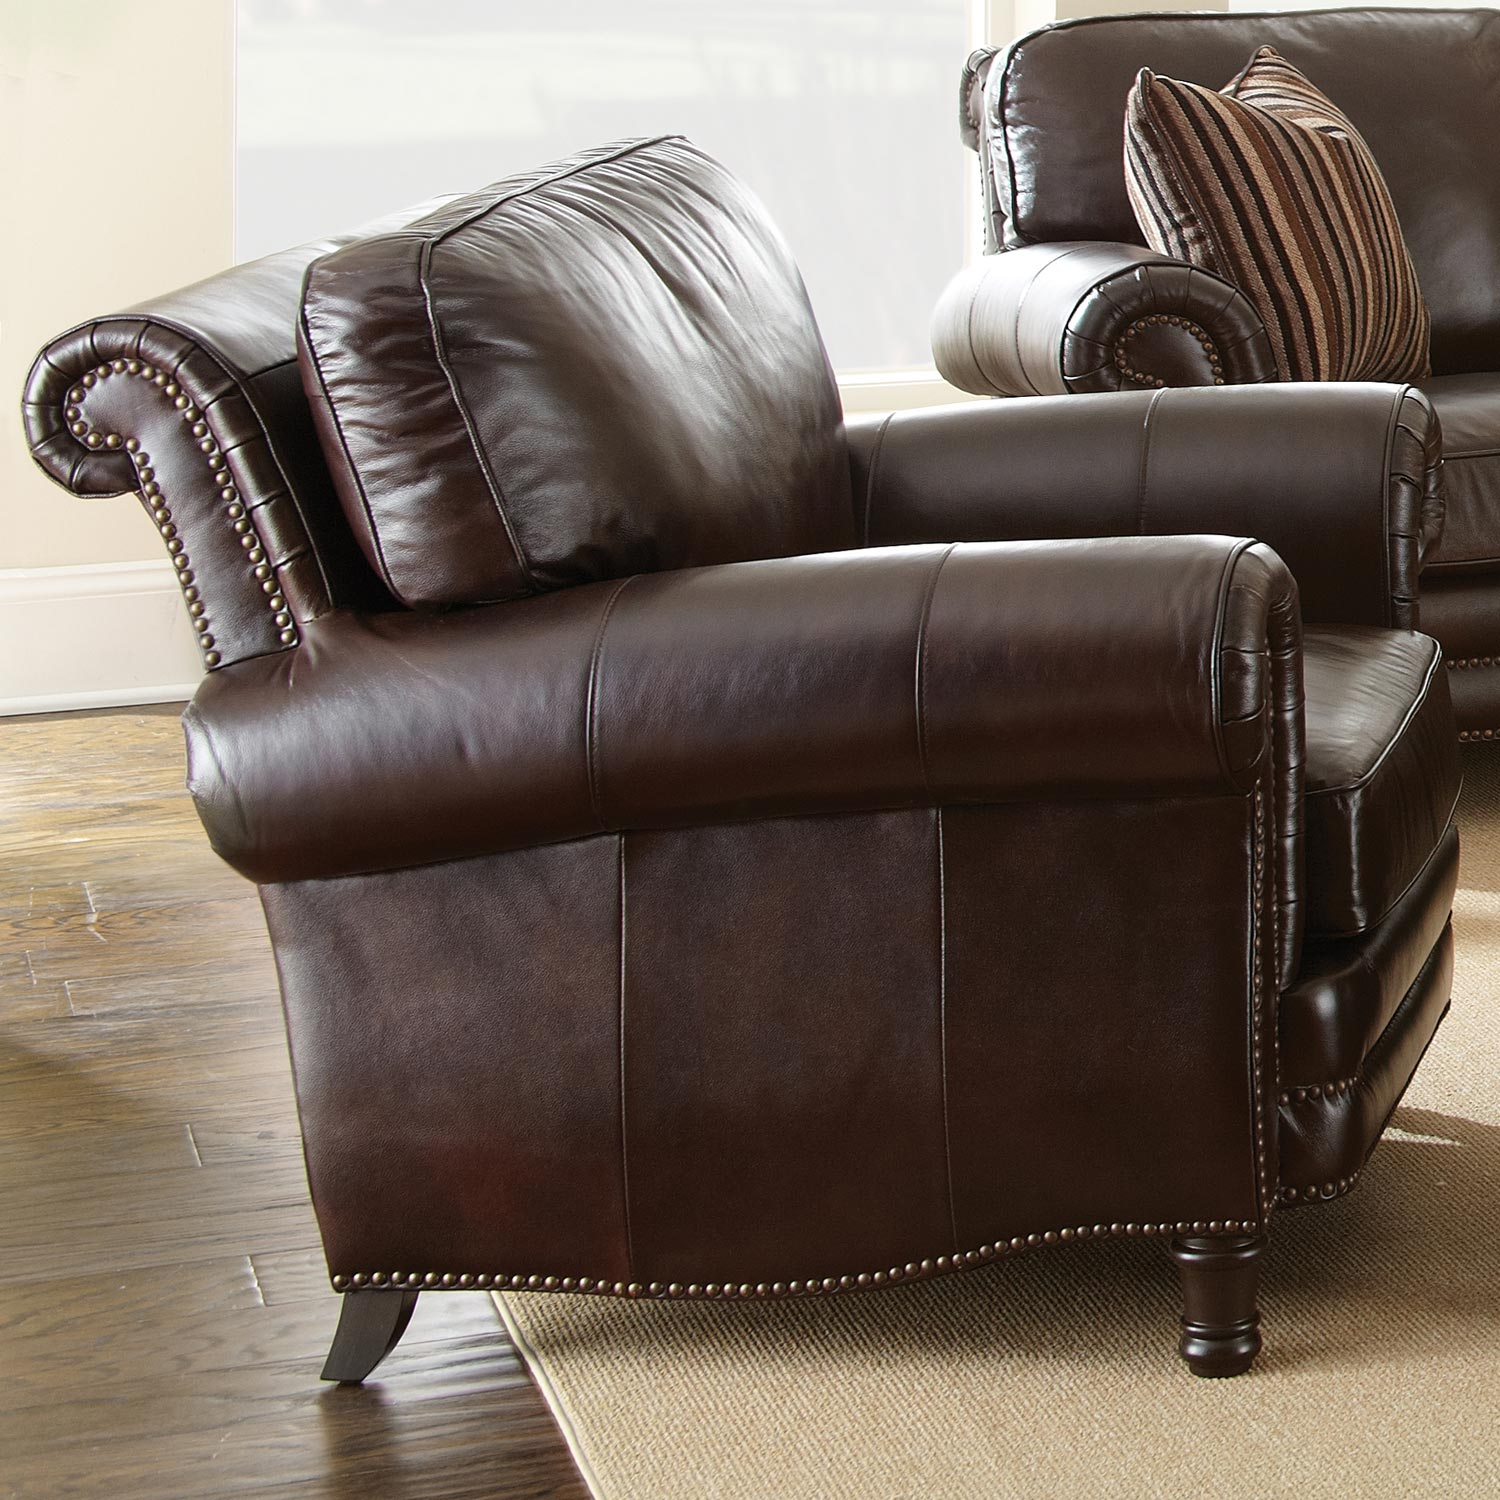 Chateau Leather Chair - Nail Heads, Antique Chocolate Brown - SSC-CH860C